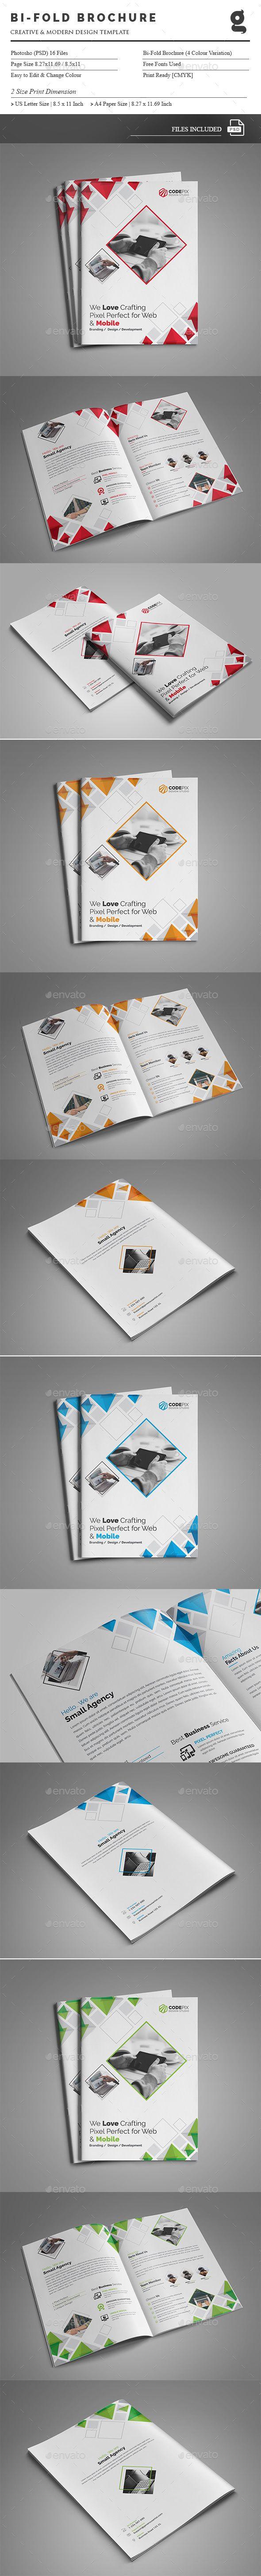 Bi-Fold Brochure - Corporate Brochures | Download: https://graphicriver.net/item/bifold-brochure/18602967?ref=sinzo